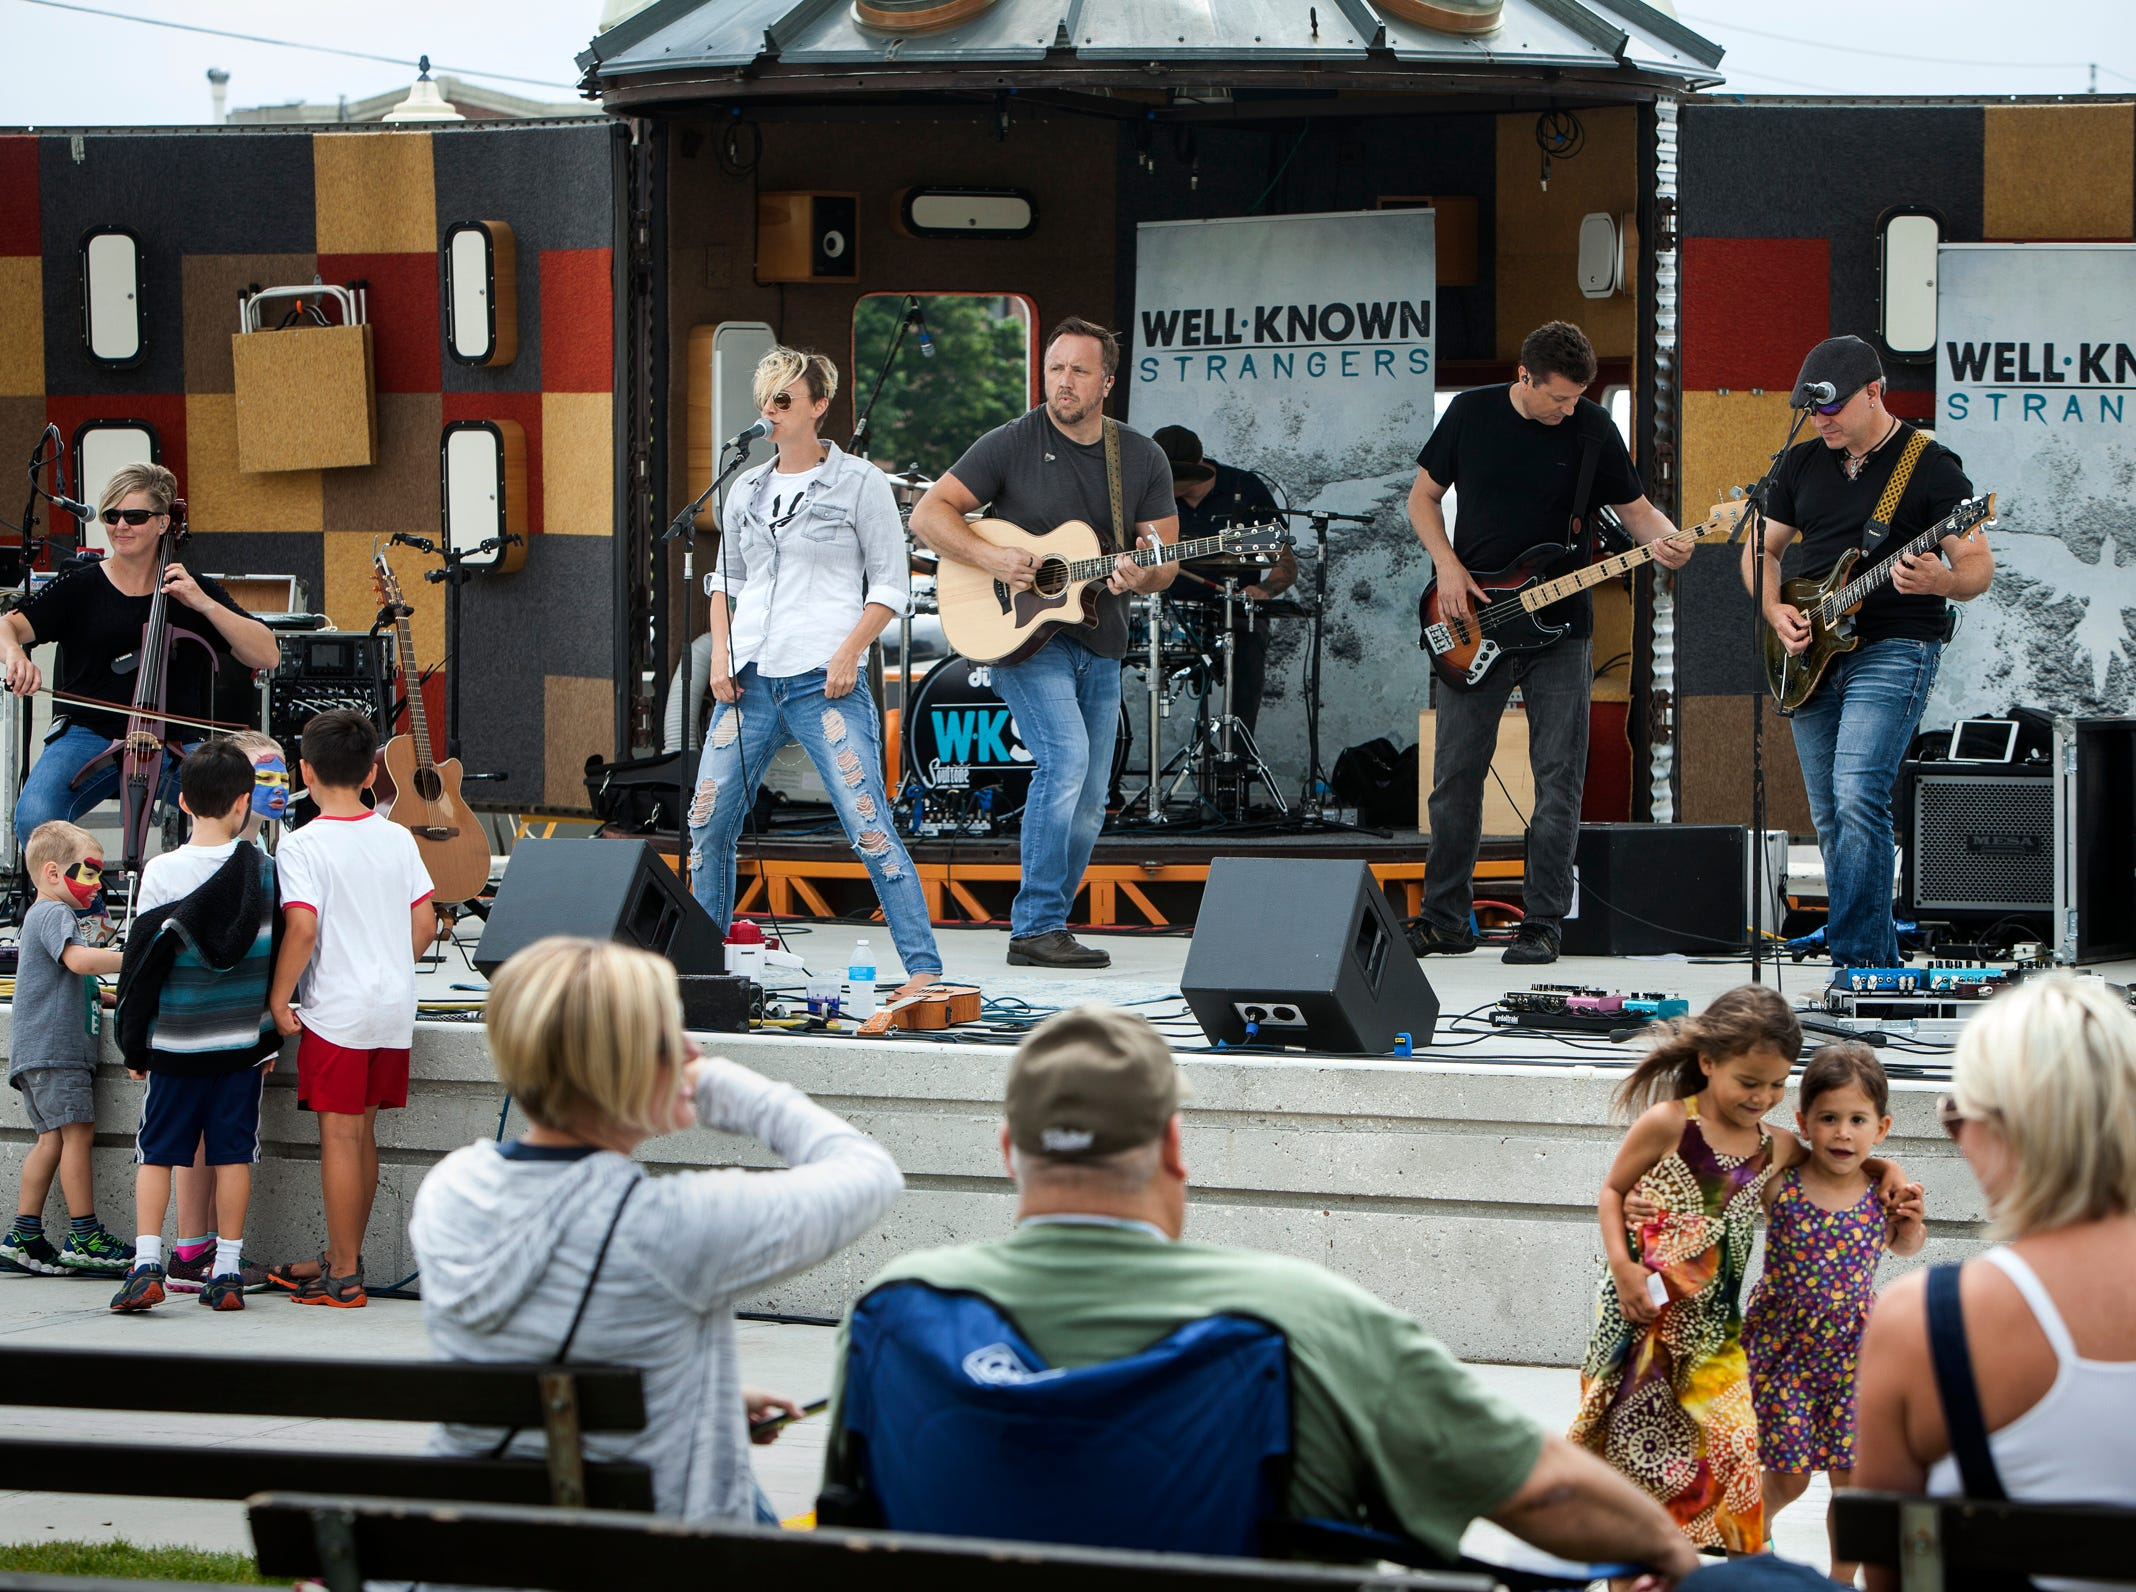 Music by Well - Known Strangers at Midsummer Festival of the Arts in Sheboygan on July 21.